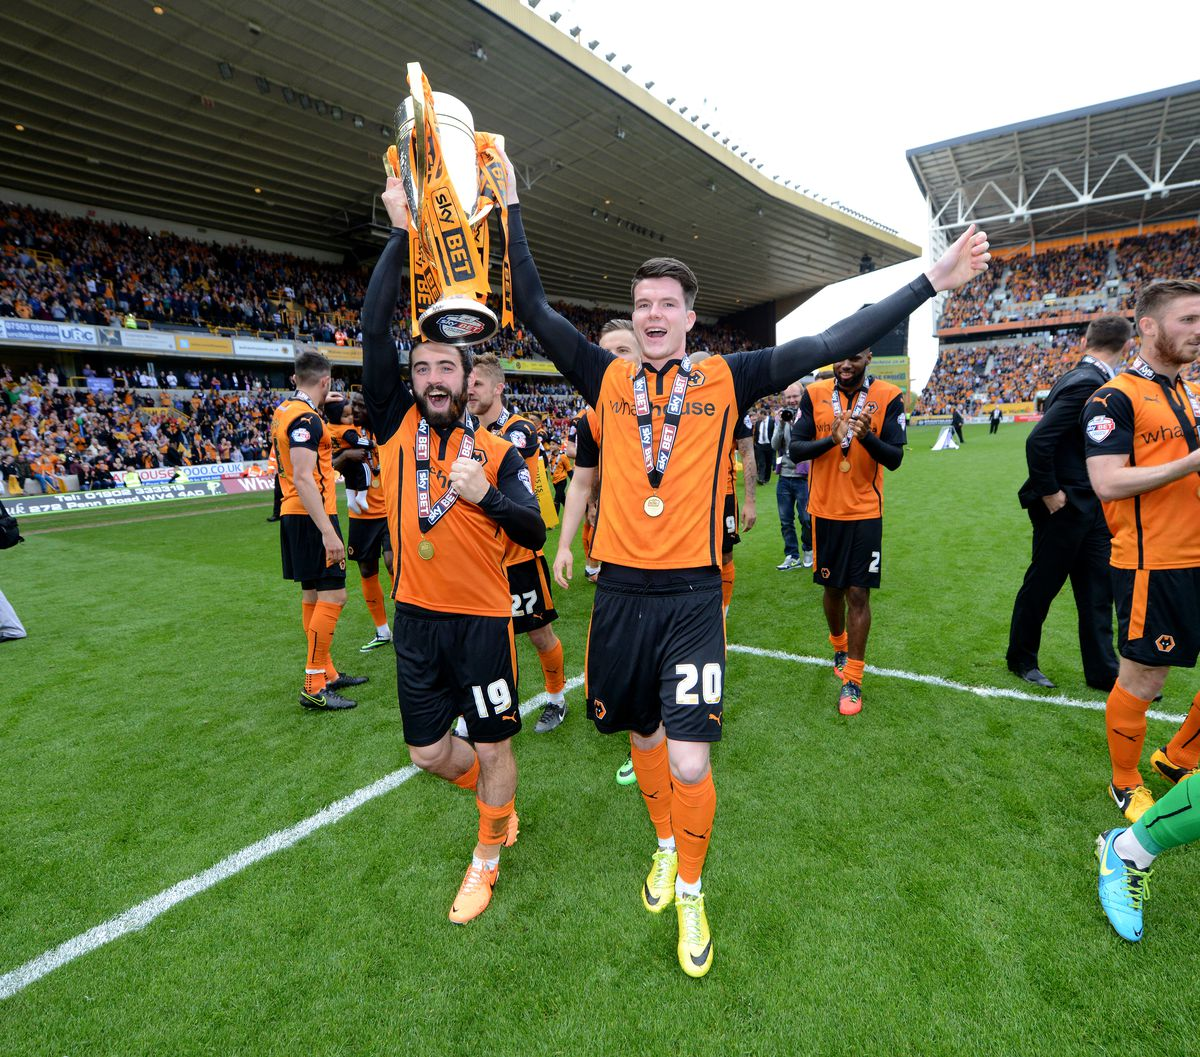 Price and Liam McAlinden with the League One trophy